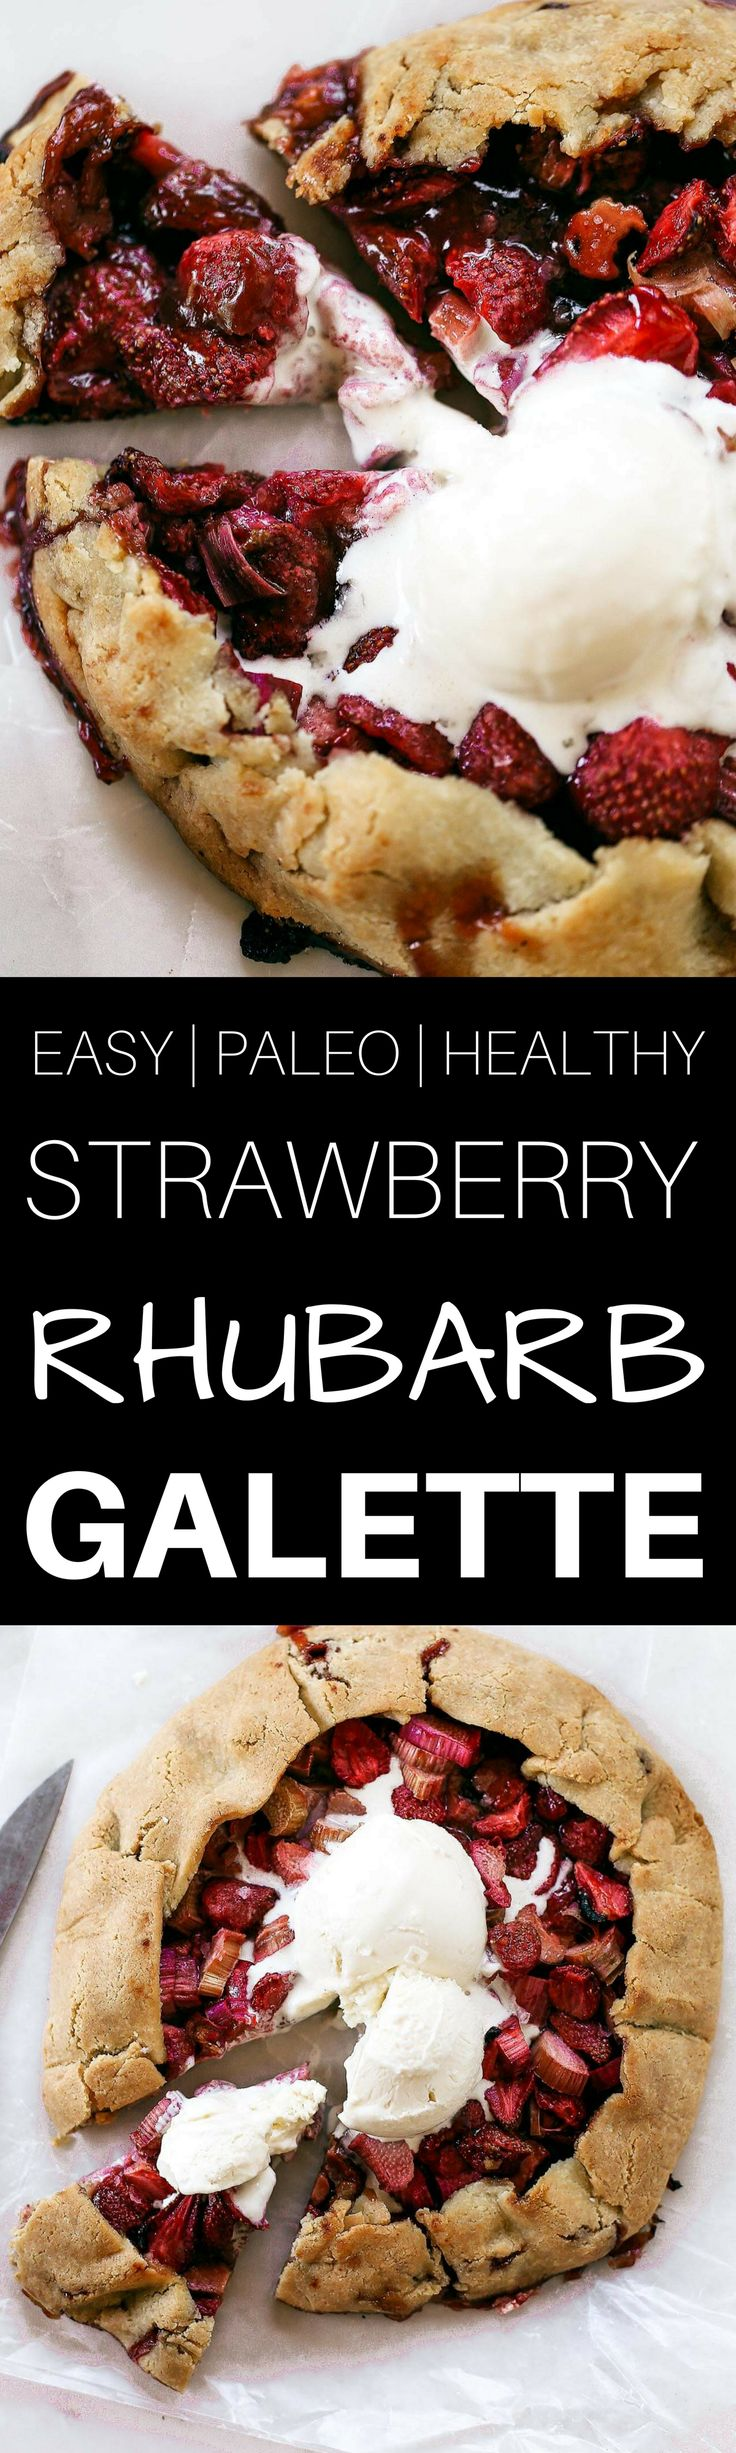 "Incredibly easy grain free & paleo strawberry rhubarb galette. A healthy and simple summer treat made with whole food ingredients. Naturally gluten free and dairy free. Sweetened without refined sugar. That sugary gooey fruit filling is to die for! Especially paired with a light and ""buttery"" almond flour crust. Gluten free galette. Paleo fruit galette. best paleo strawberry galette. easy healthy galette recipe. paleo galette recipe. easy gluten free summer desserts. grain free pie crust…"